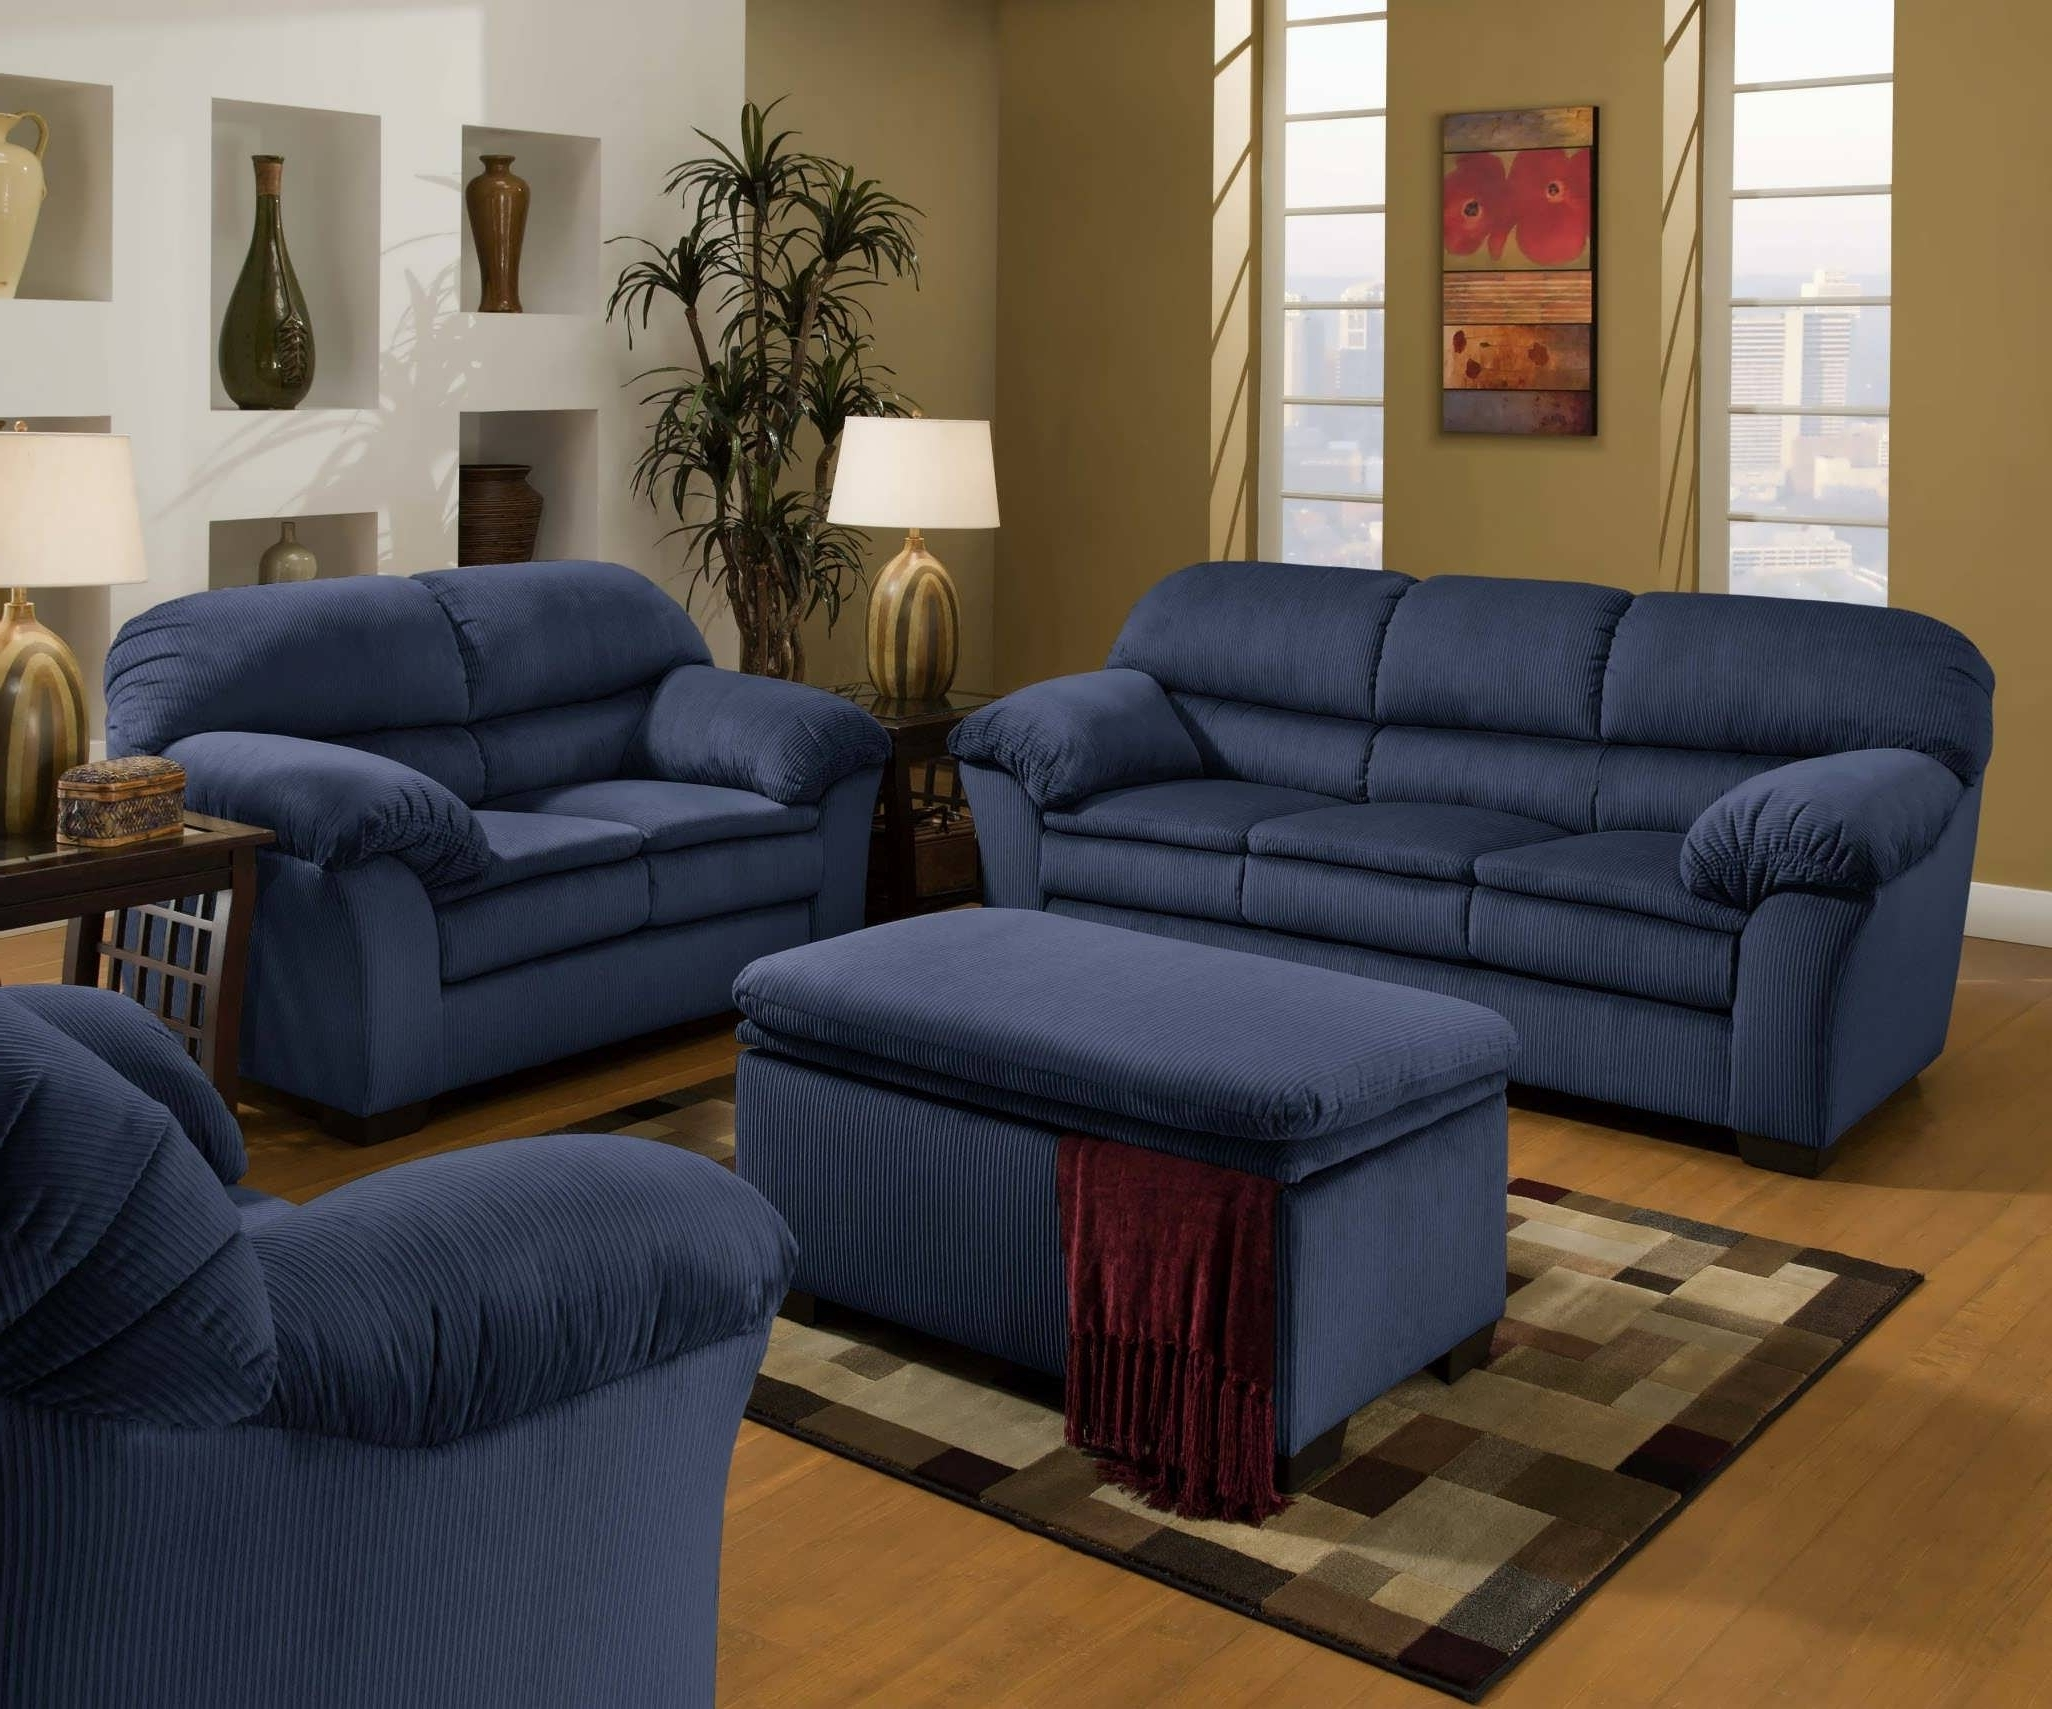 Most Popular Blue Sofa Chairs Inside Blue Sofa Set Large Office Chairs Ottomans & Storage Dressers 17Ec (View 10 of 15)